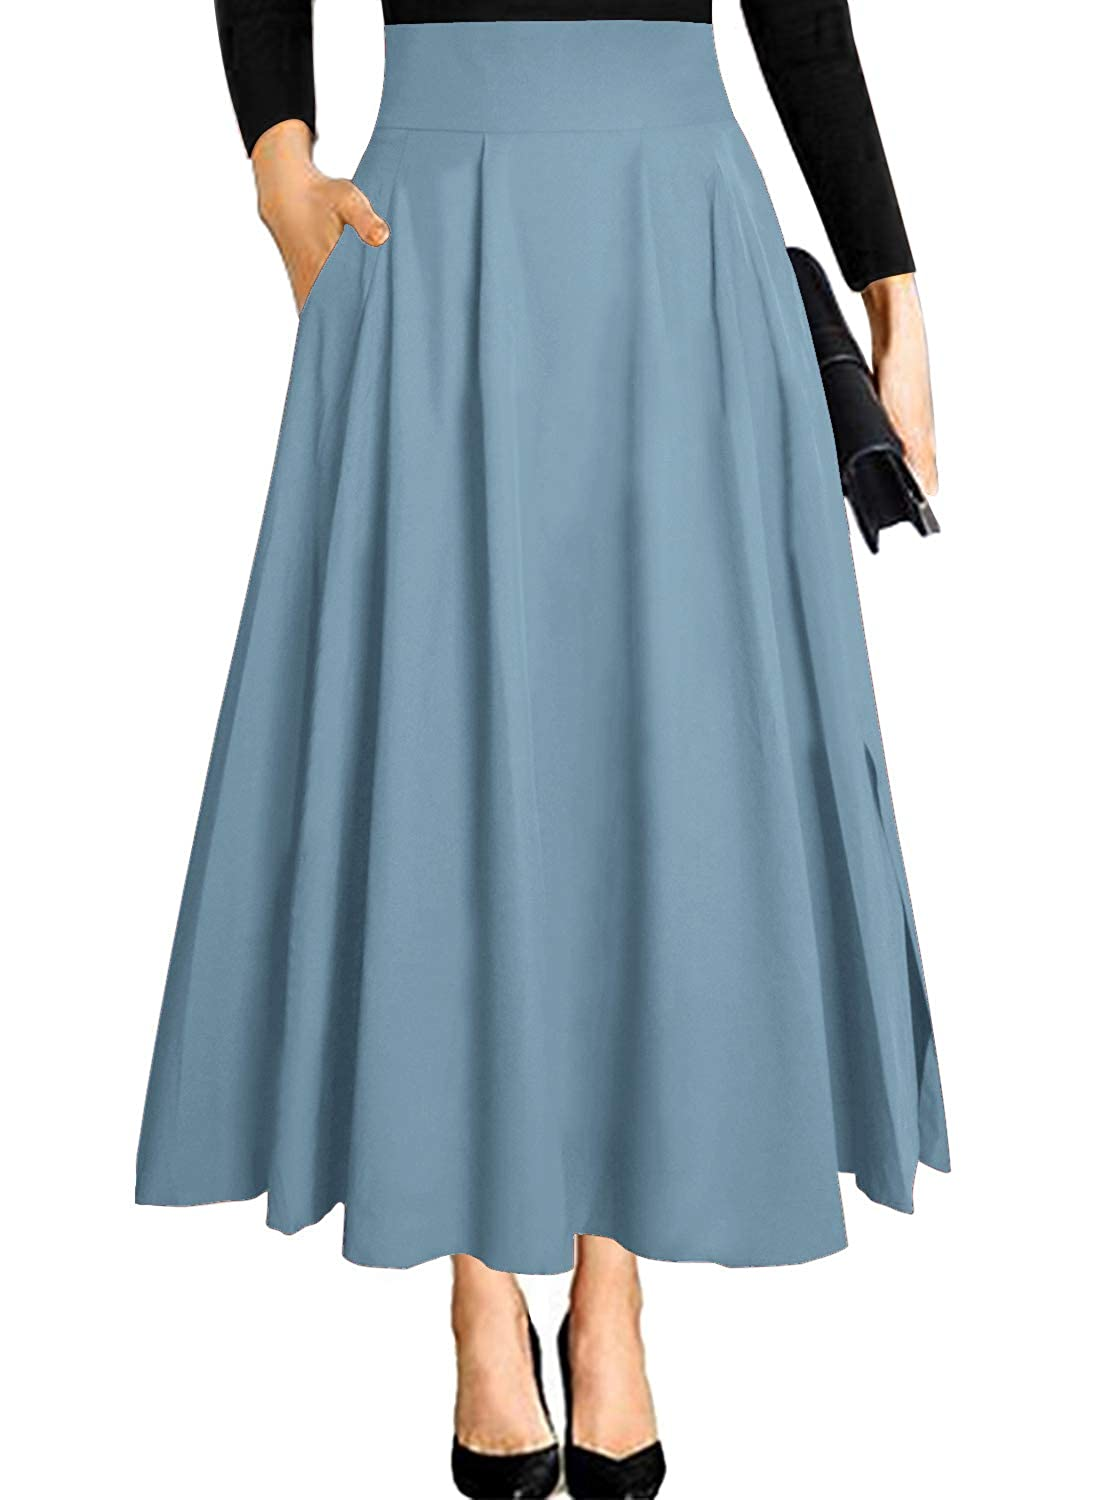 1890s-1900s Fashion, Clothing, Costumes Ranphee Womens Ankle Length High Waist A-line Flowy Long Maxi Skirt with Pockets $25.99 AT vintagedancer.com